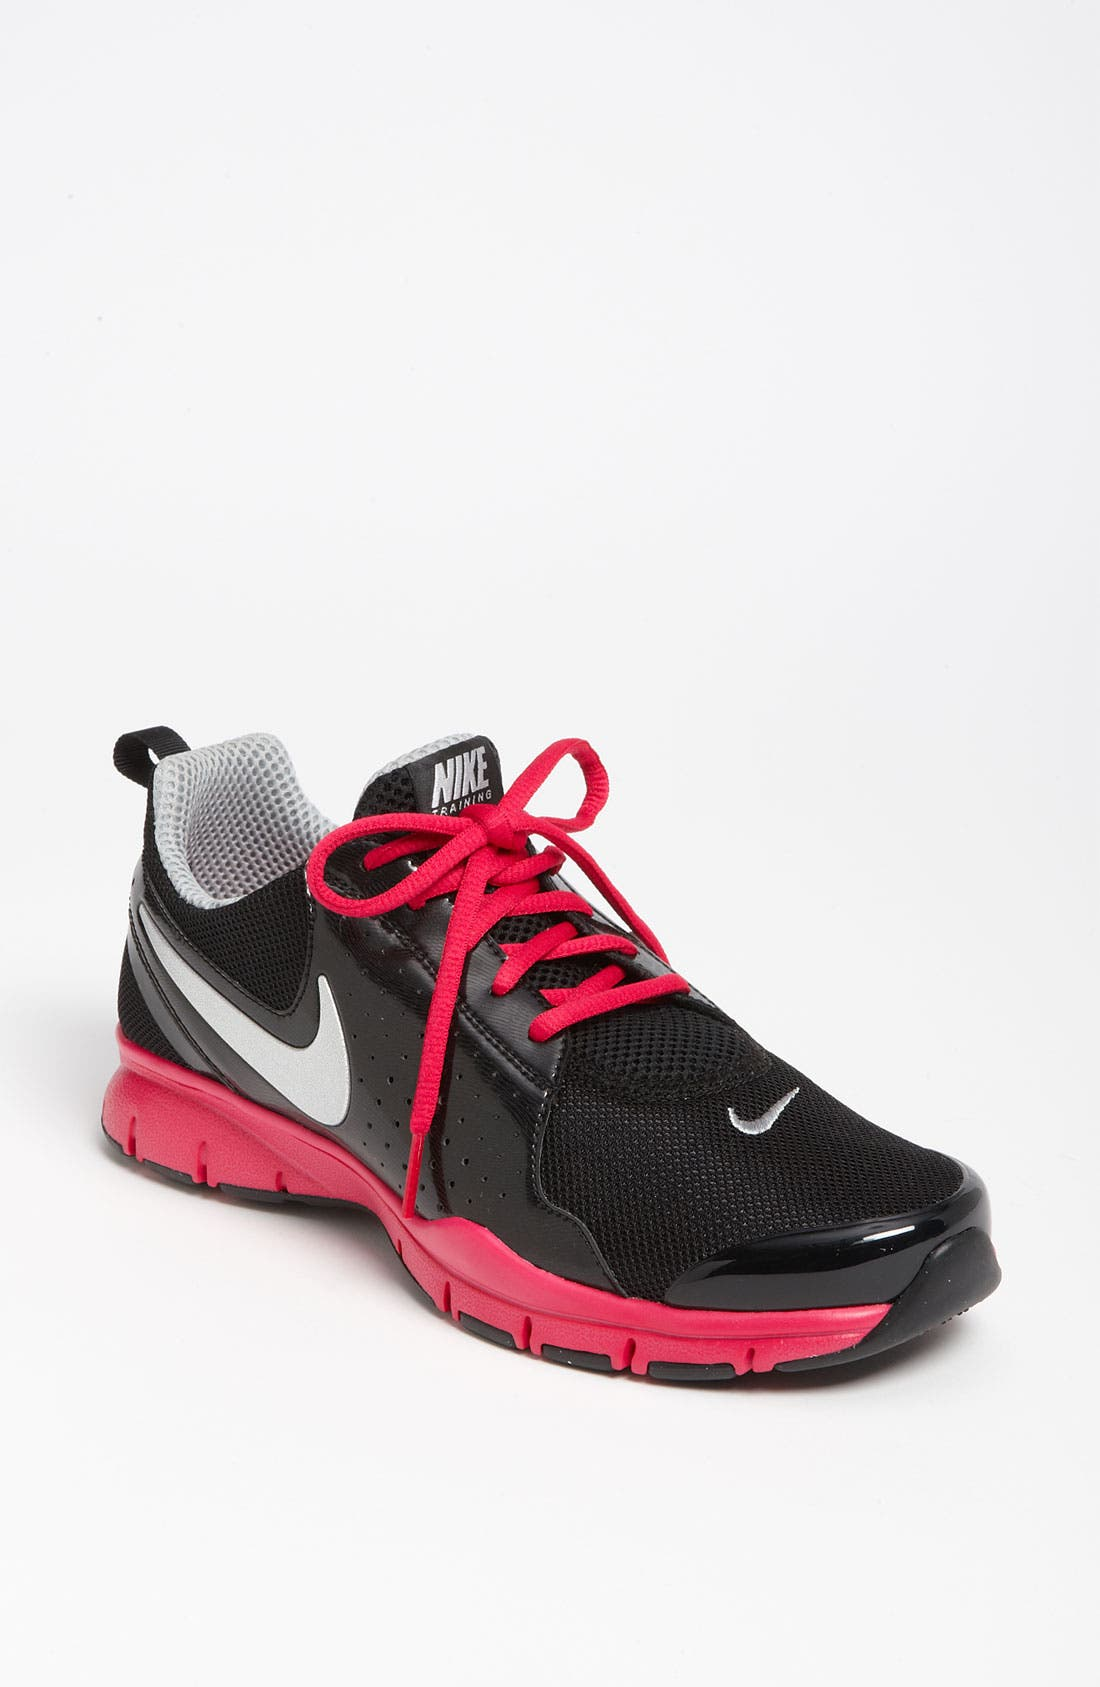 Alternate Image 1 Selected - Nike 'In Season TR' Training Shoe (Women)